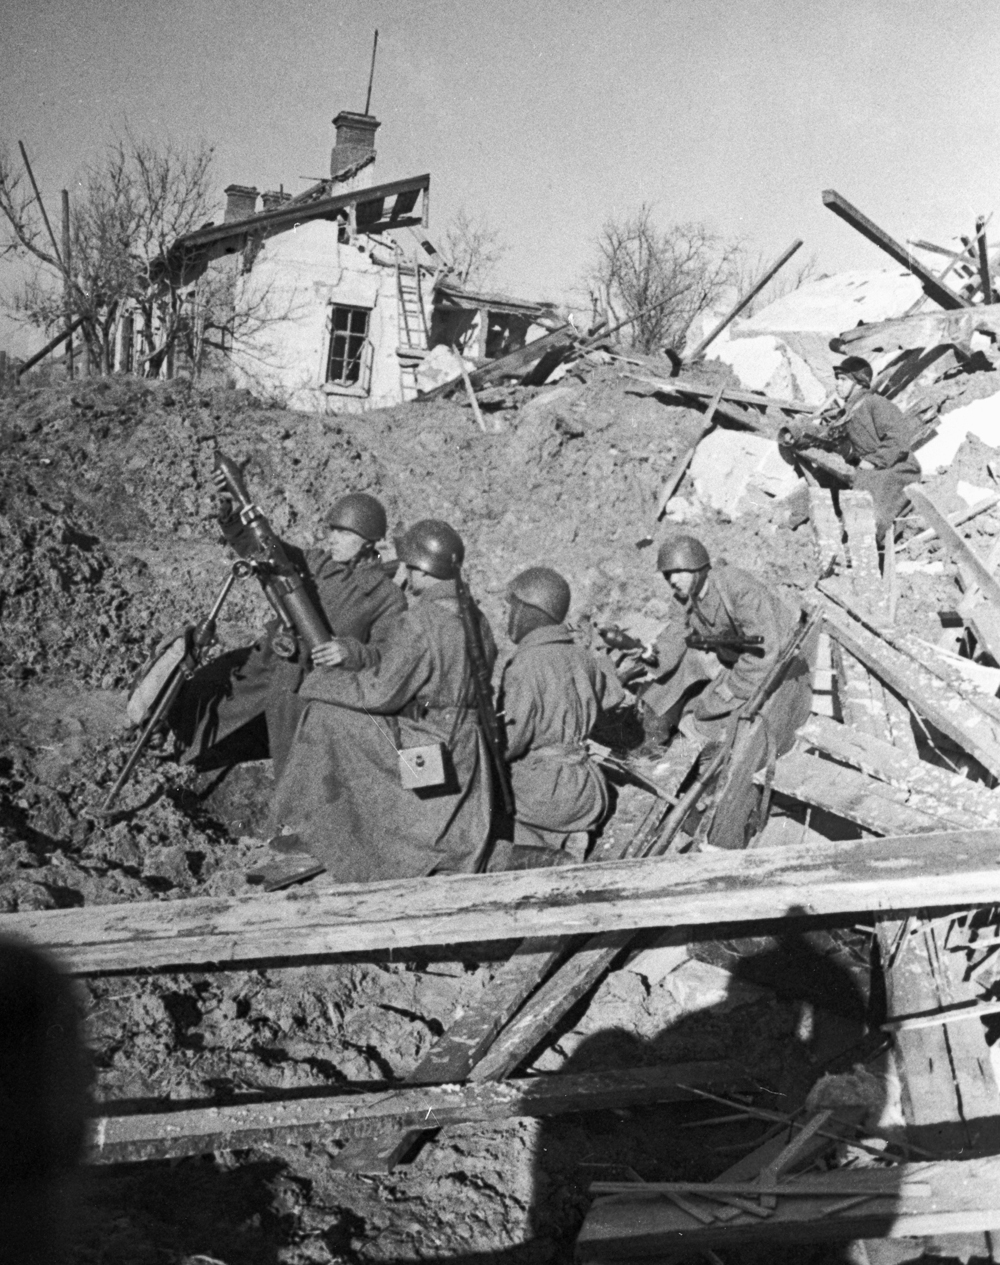 The victory in Stalingrad cost the Soviet people titanic efforts. Stalingrad was one of Hitler's main aims from the very beginning of his war against the Soviet Union. If he managed to conquer this city, this would enable his army to reach the Caucasus, a region rich with oil.